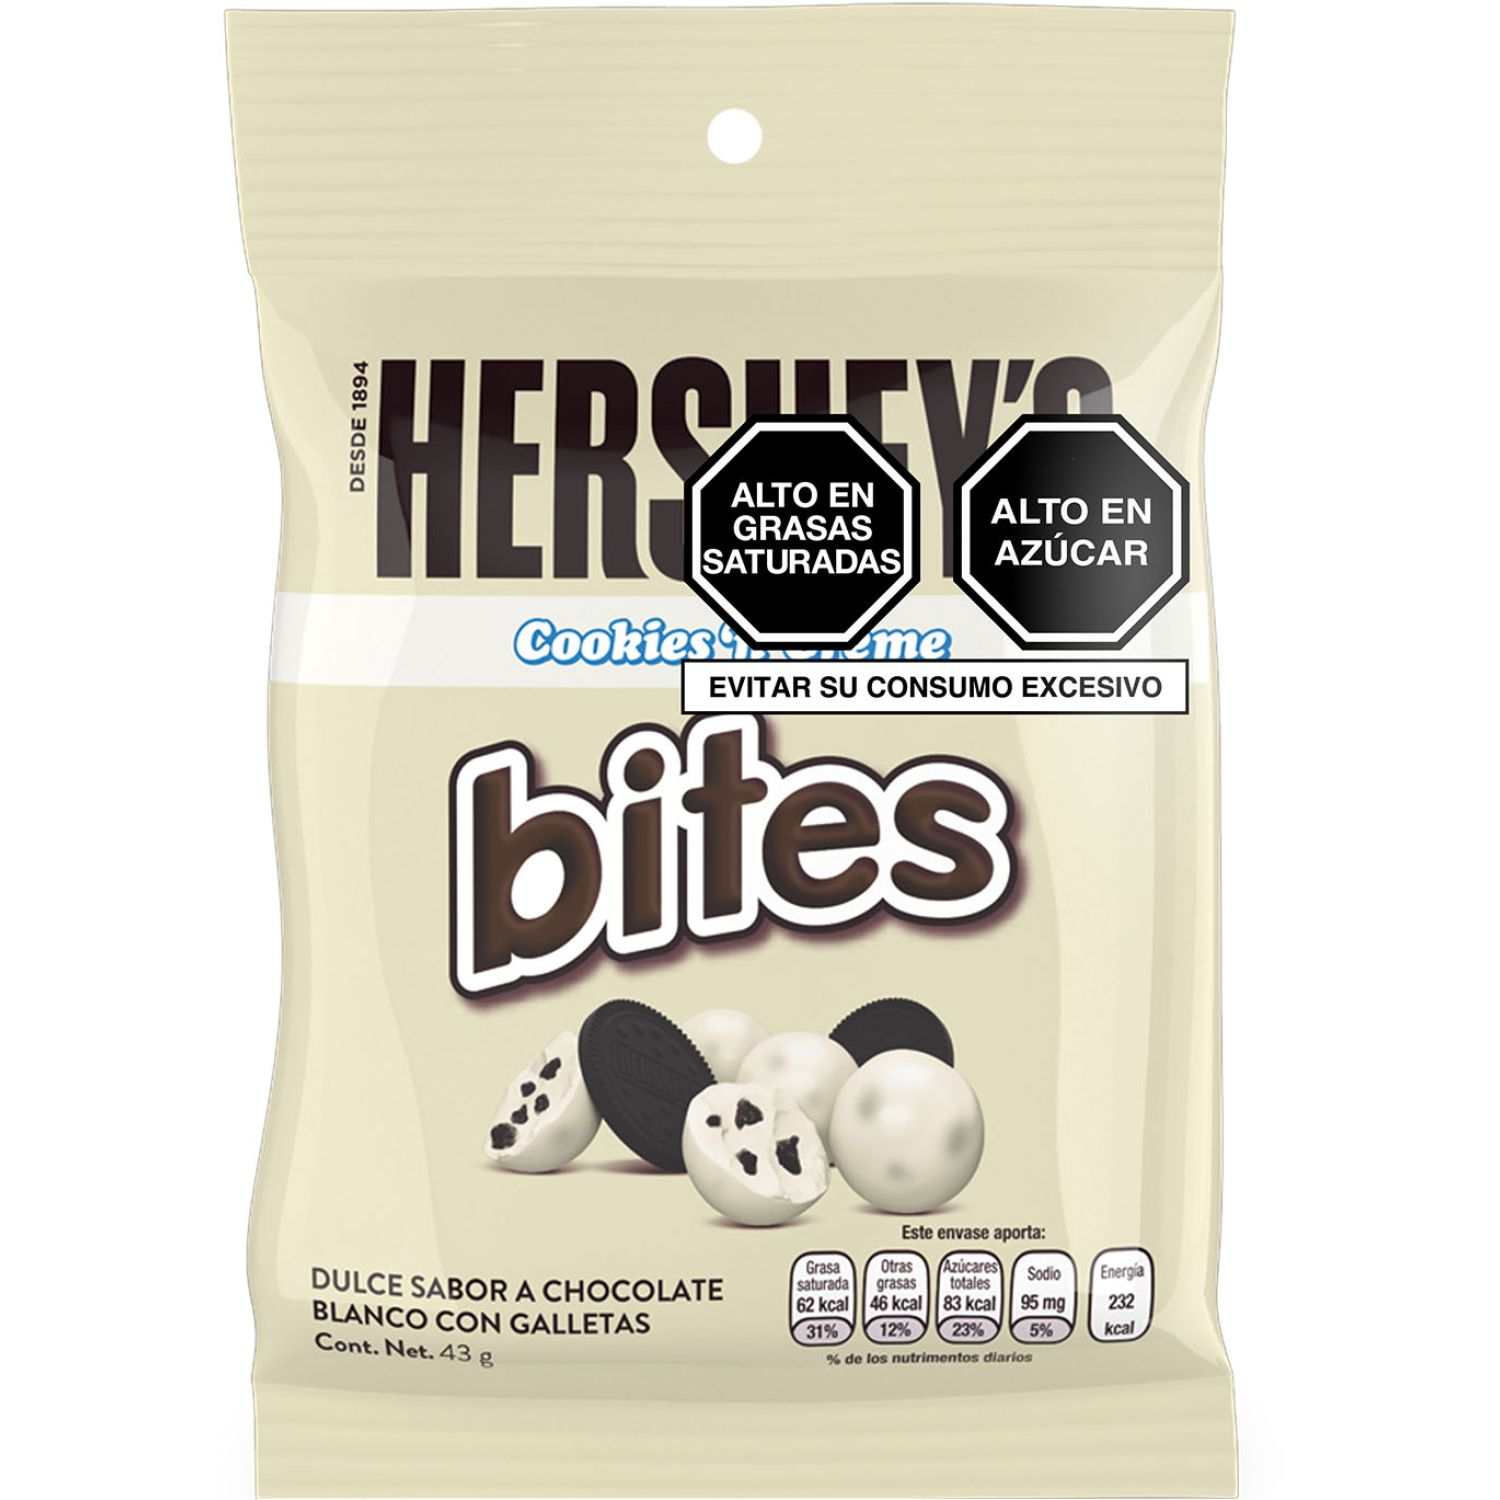 HERSHEY'S Bites Cookiesncream 43g Sin color Surtidos de dulces y chocolate